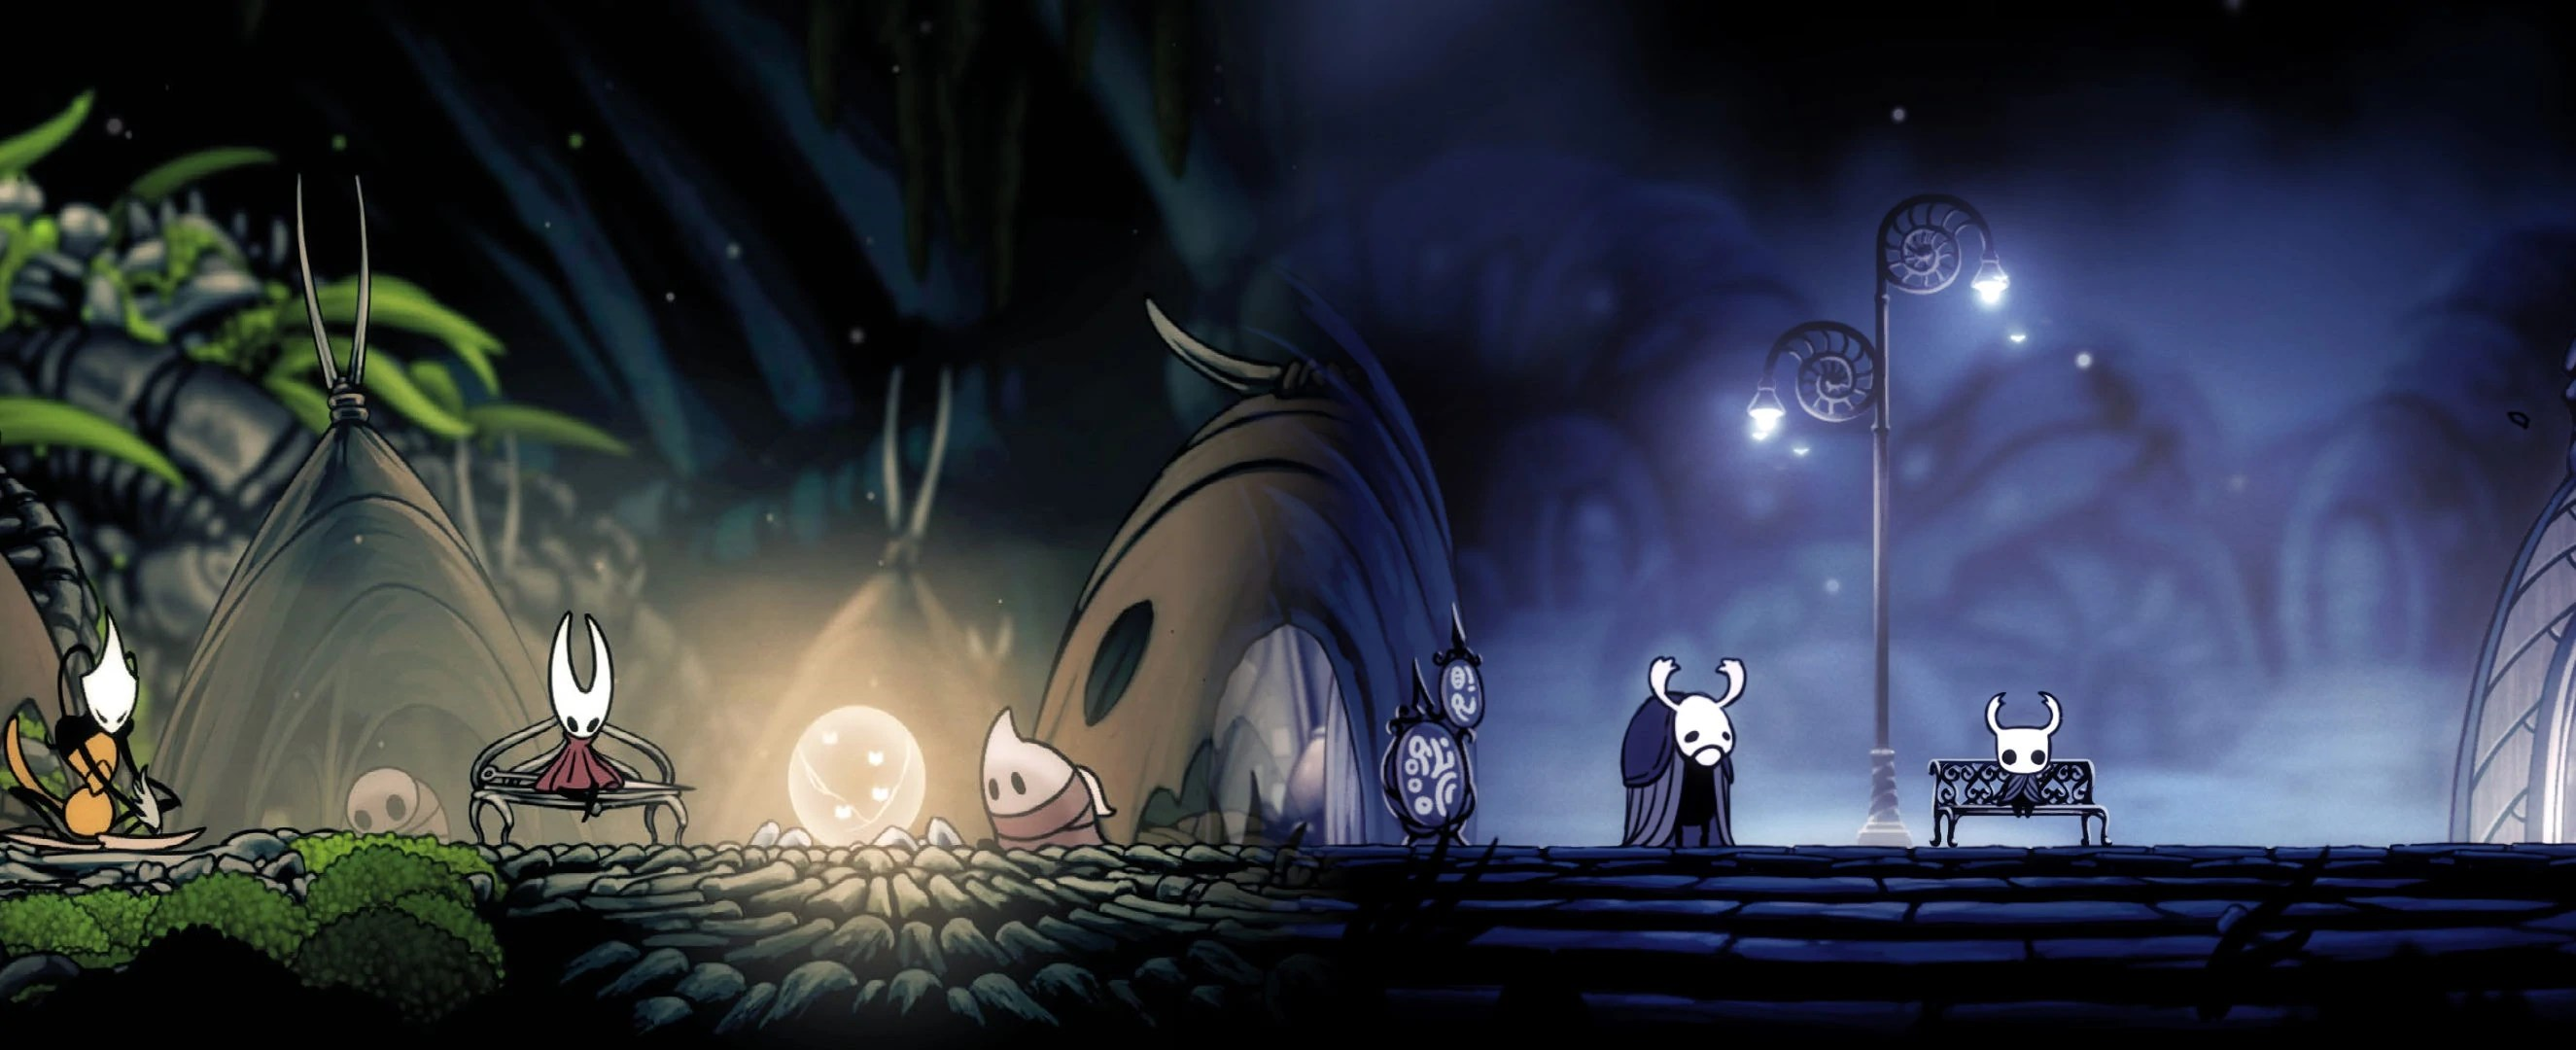 Pin By Lyrugon 2132 On Hollow Knight Hollow Art Knight Team Cherry